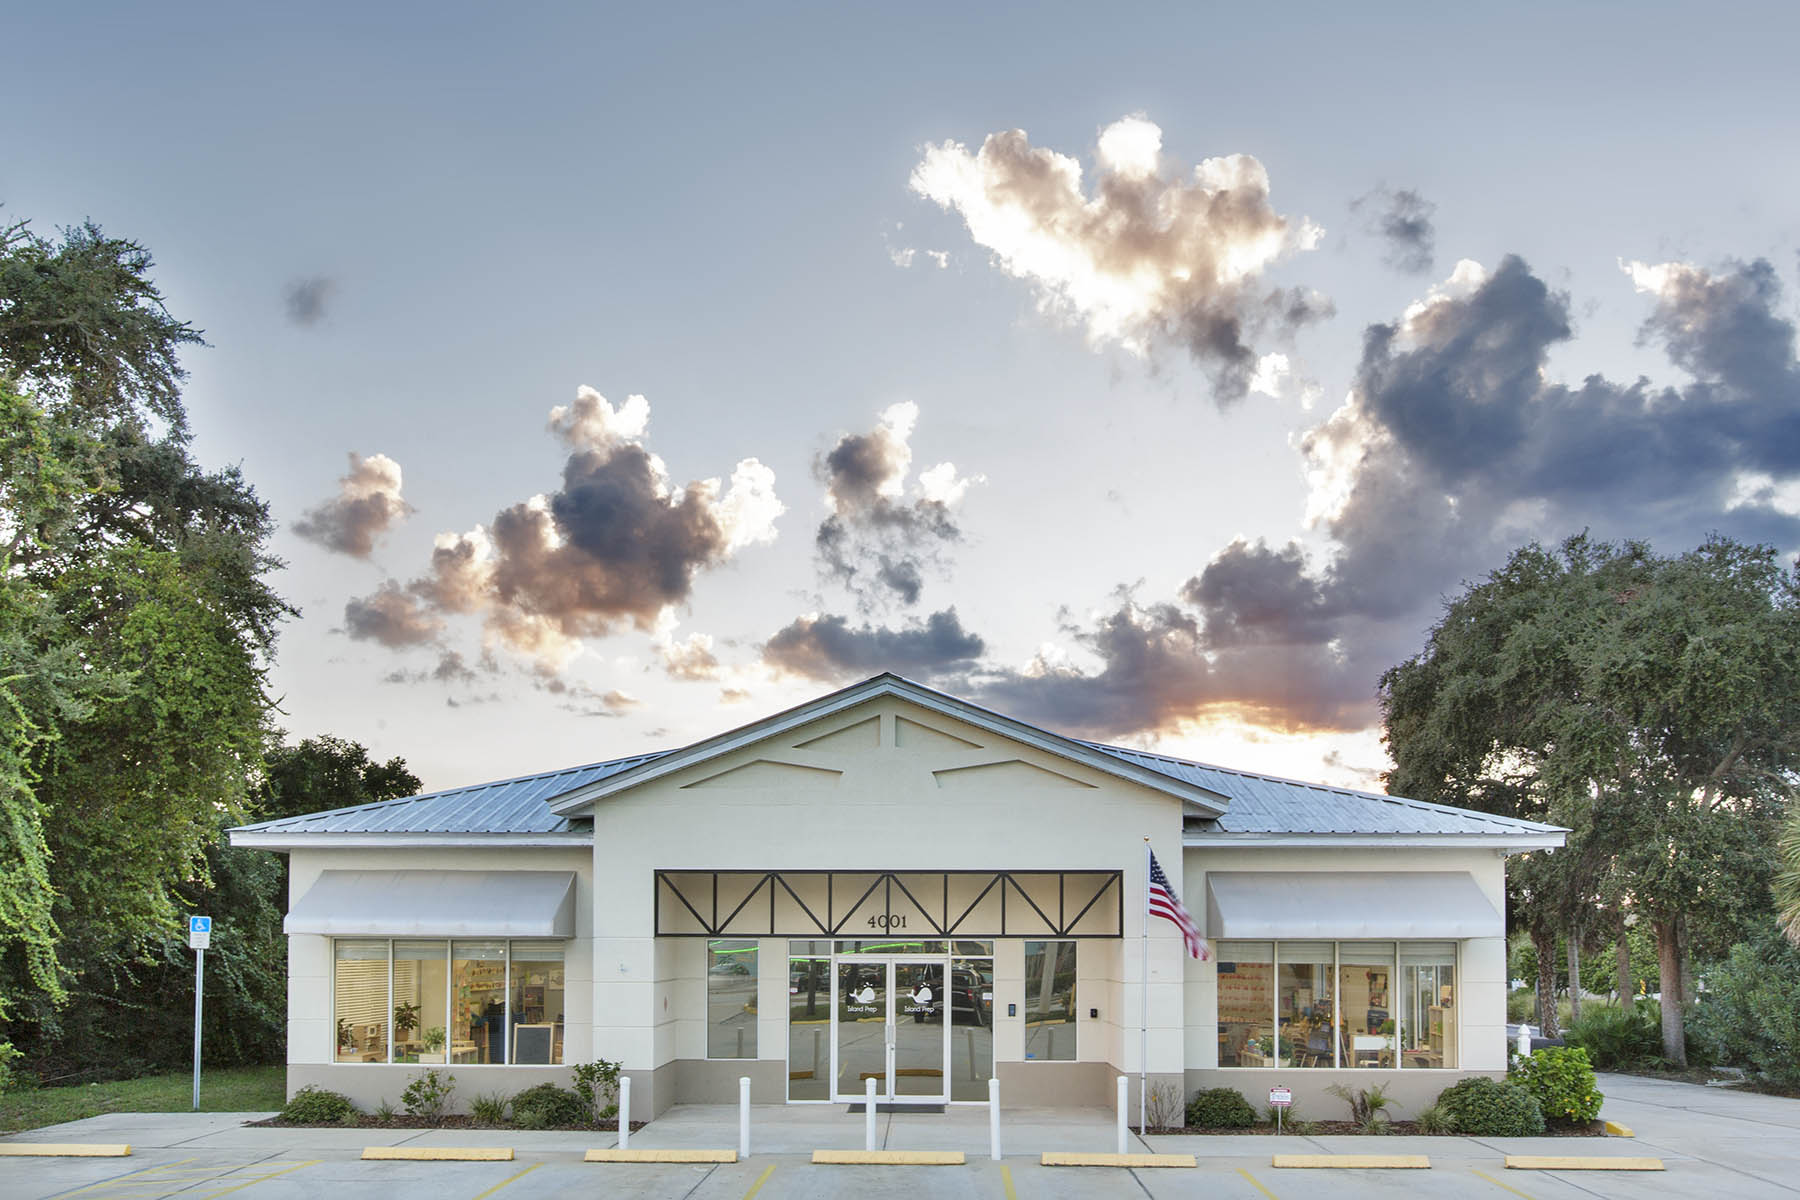 Island Prep Primary School - St Augustine Florida - Private School